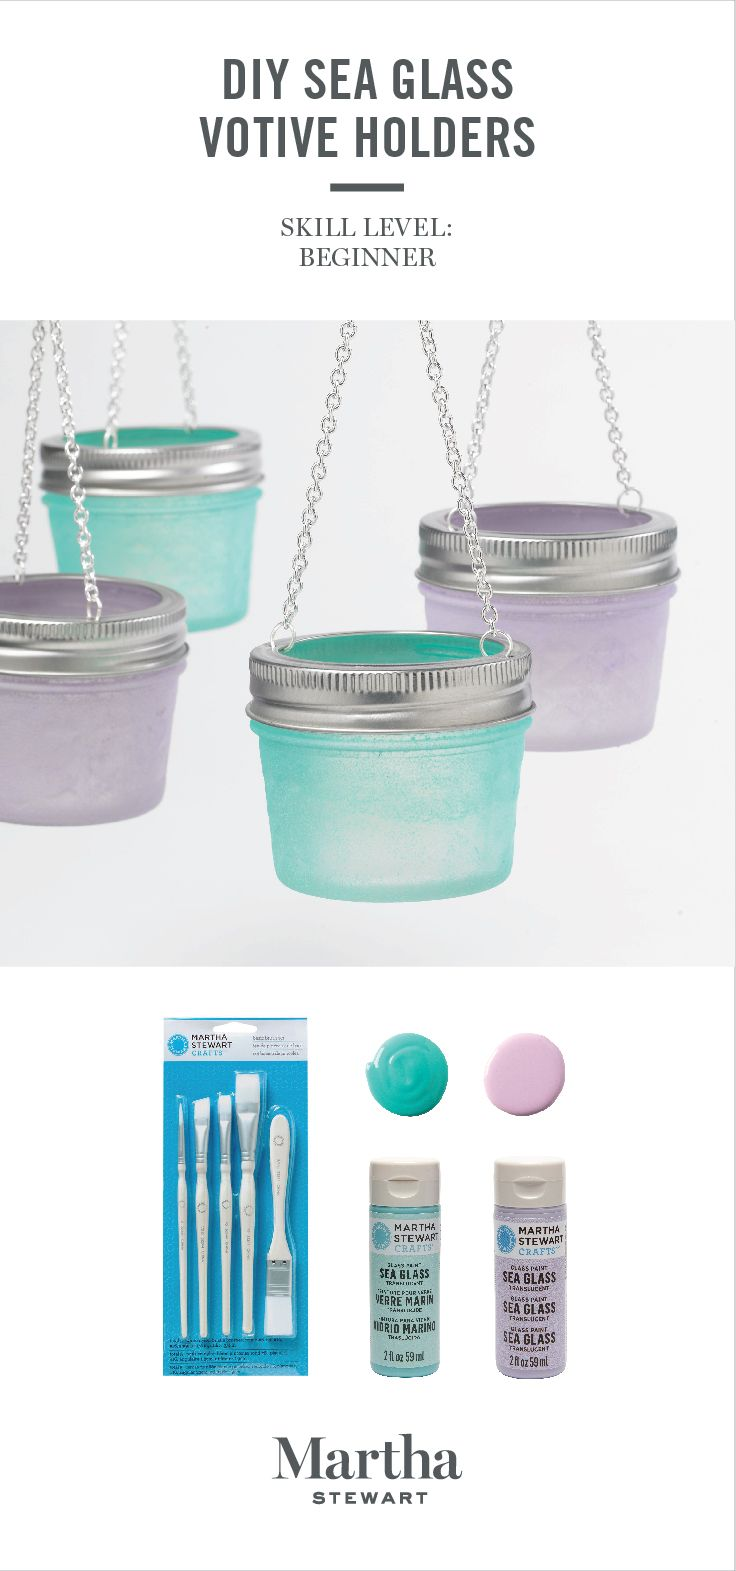 Bring back memories of walking along the beach with our new Sea Glass paints available only at Michaels. They create a frosted, pastel look to any glass surface.